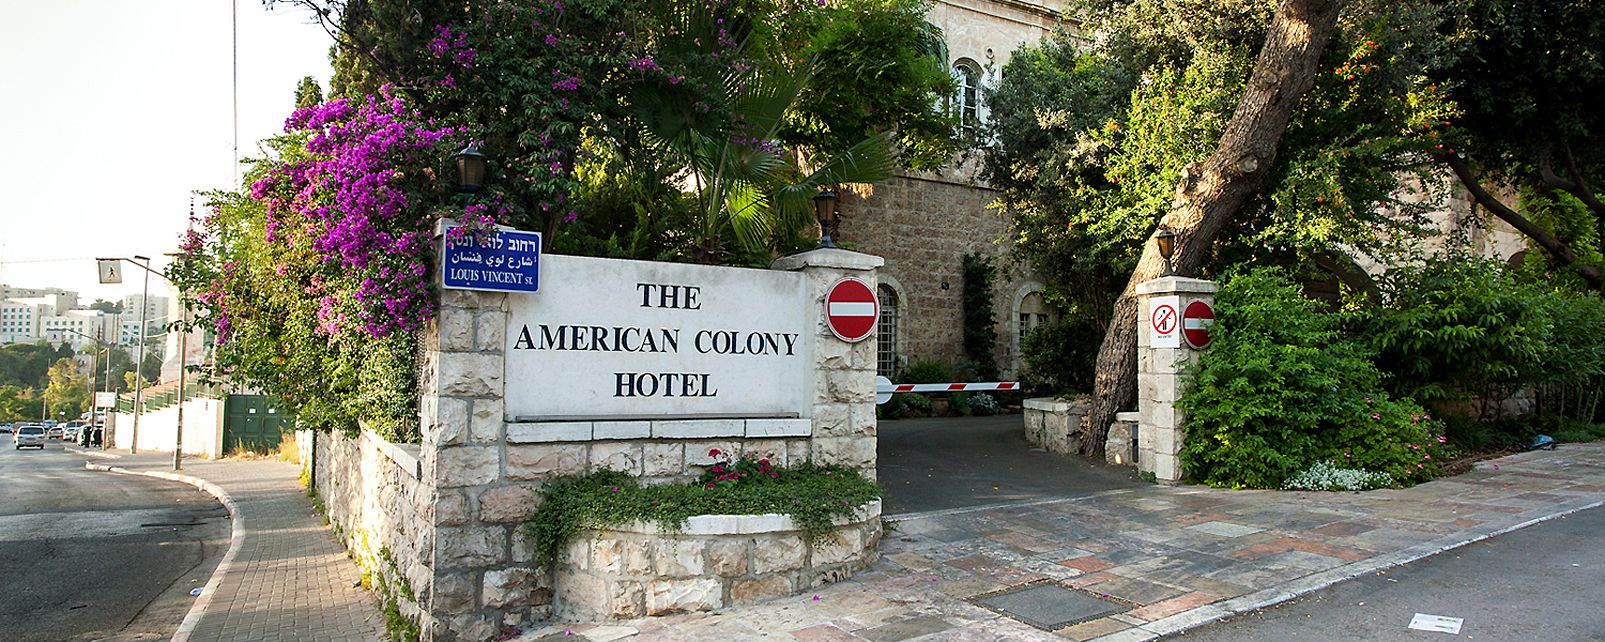 Hotel The American Colony